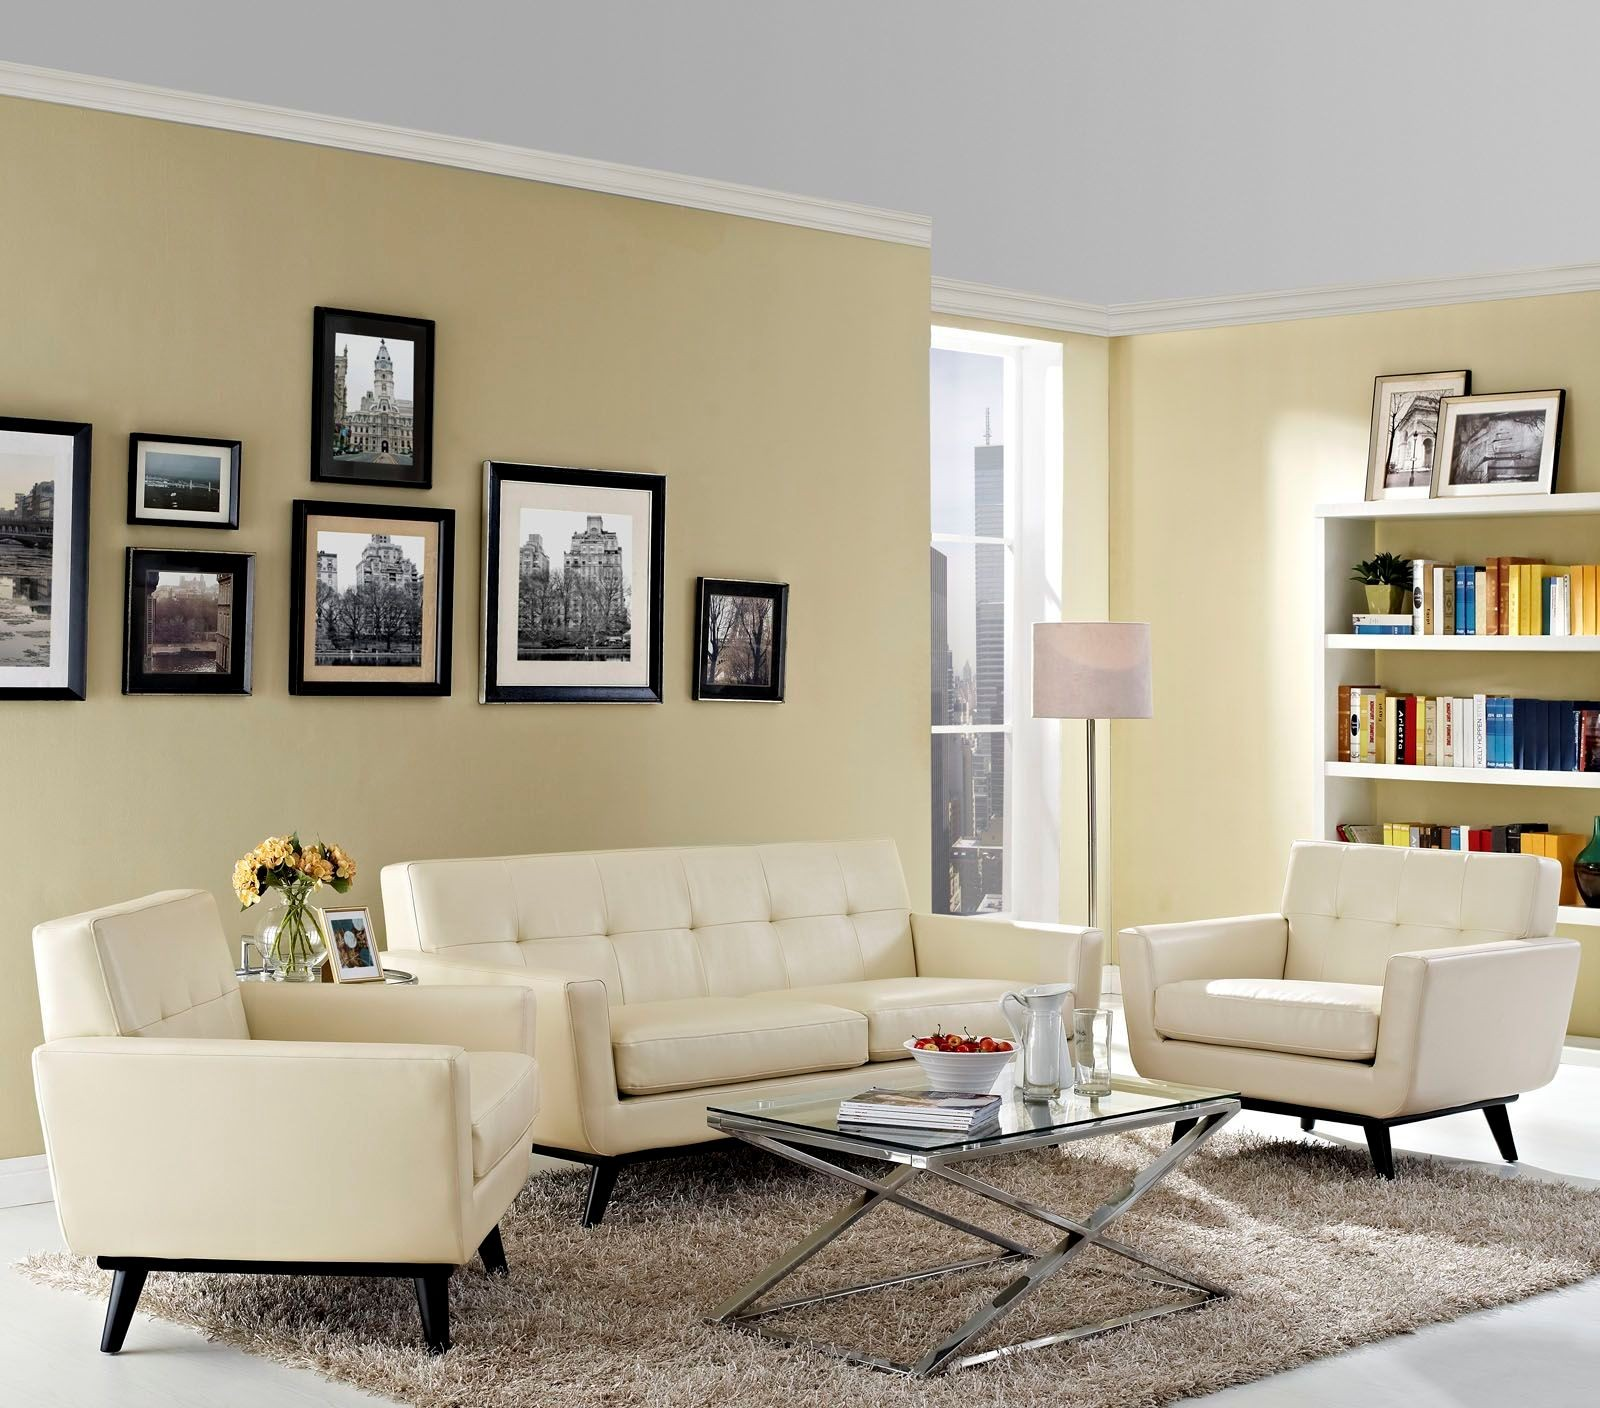 Eei 1762 bei set engage beige 3 piece leather living room for 6 piece living room set